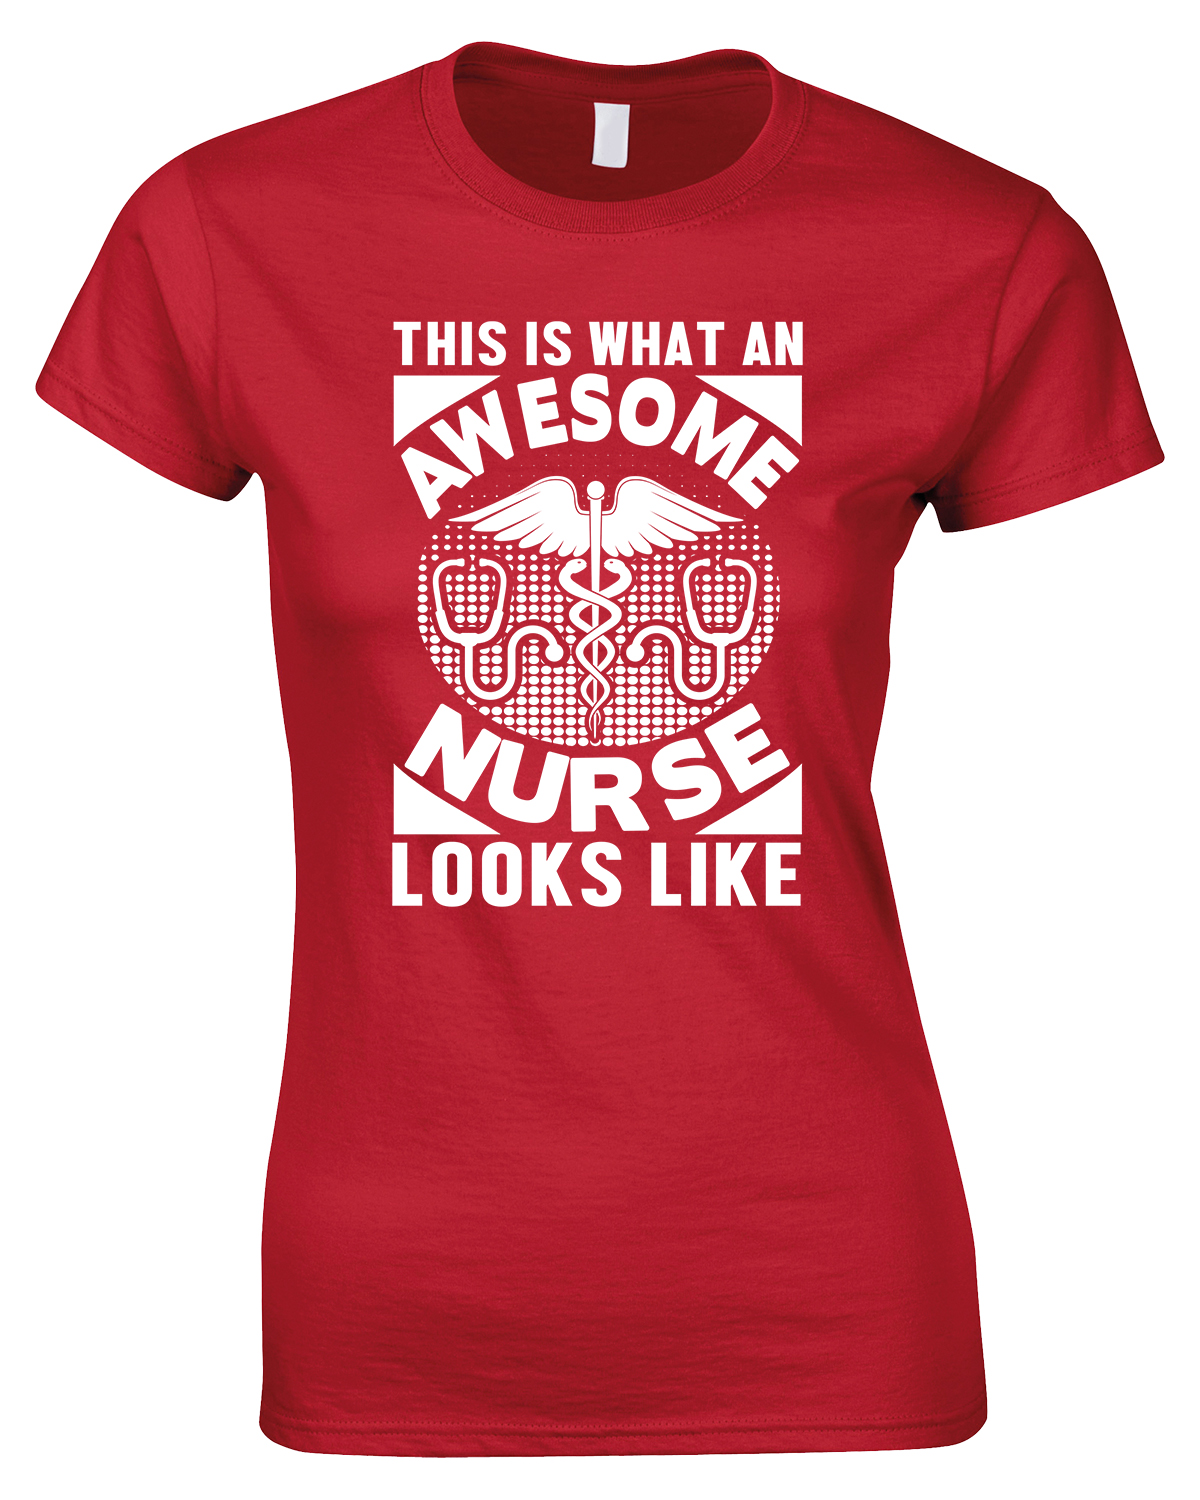 This is What an Awesome Nurse Looks Like -Ladies Style T Shirt